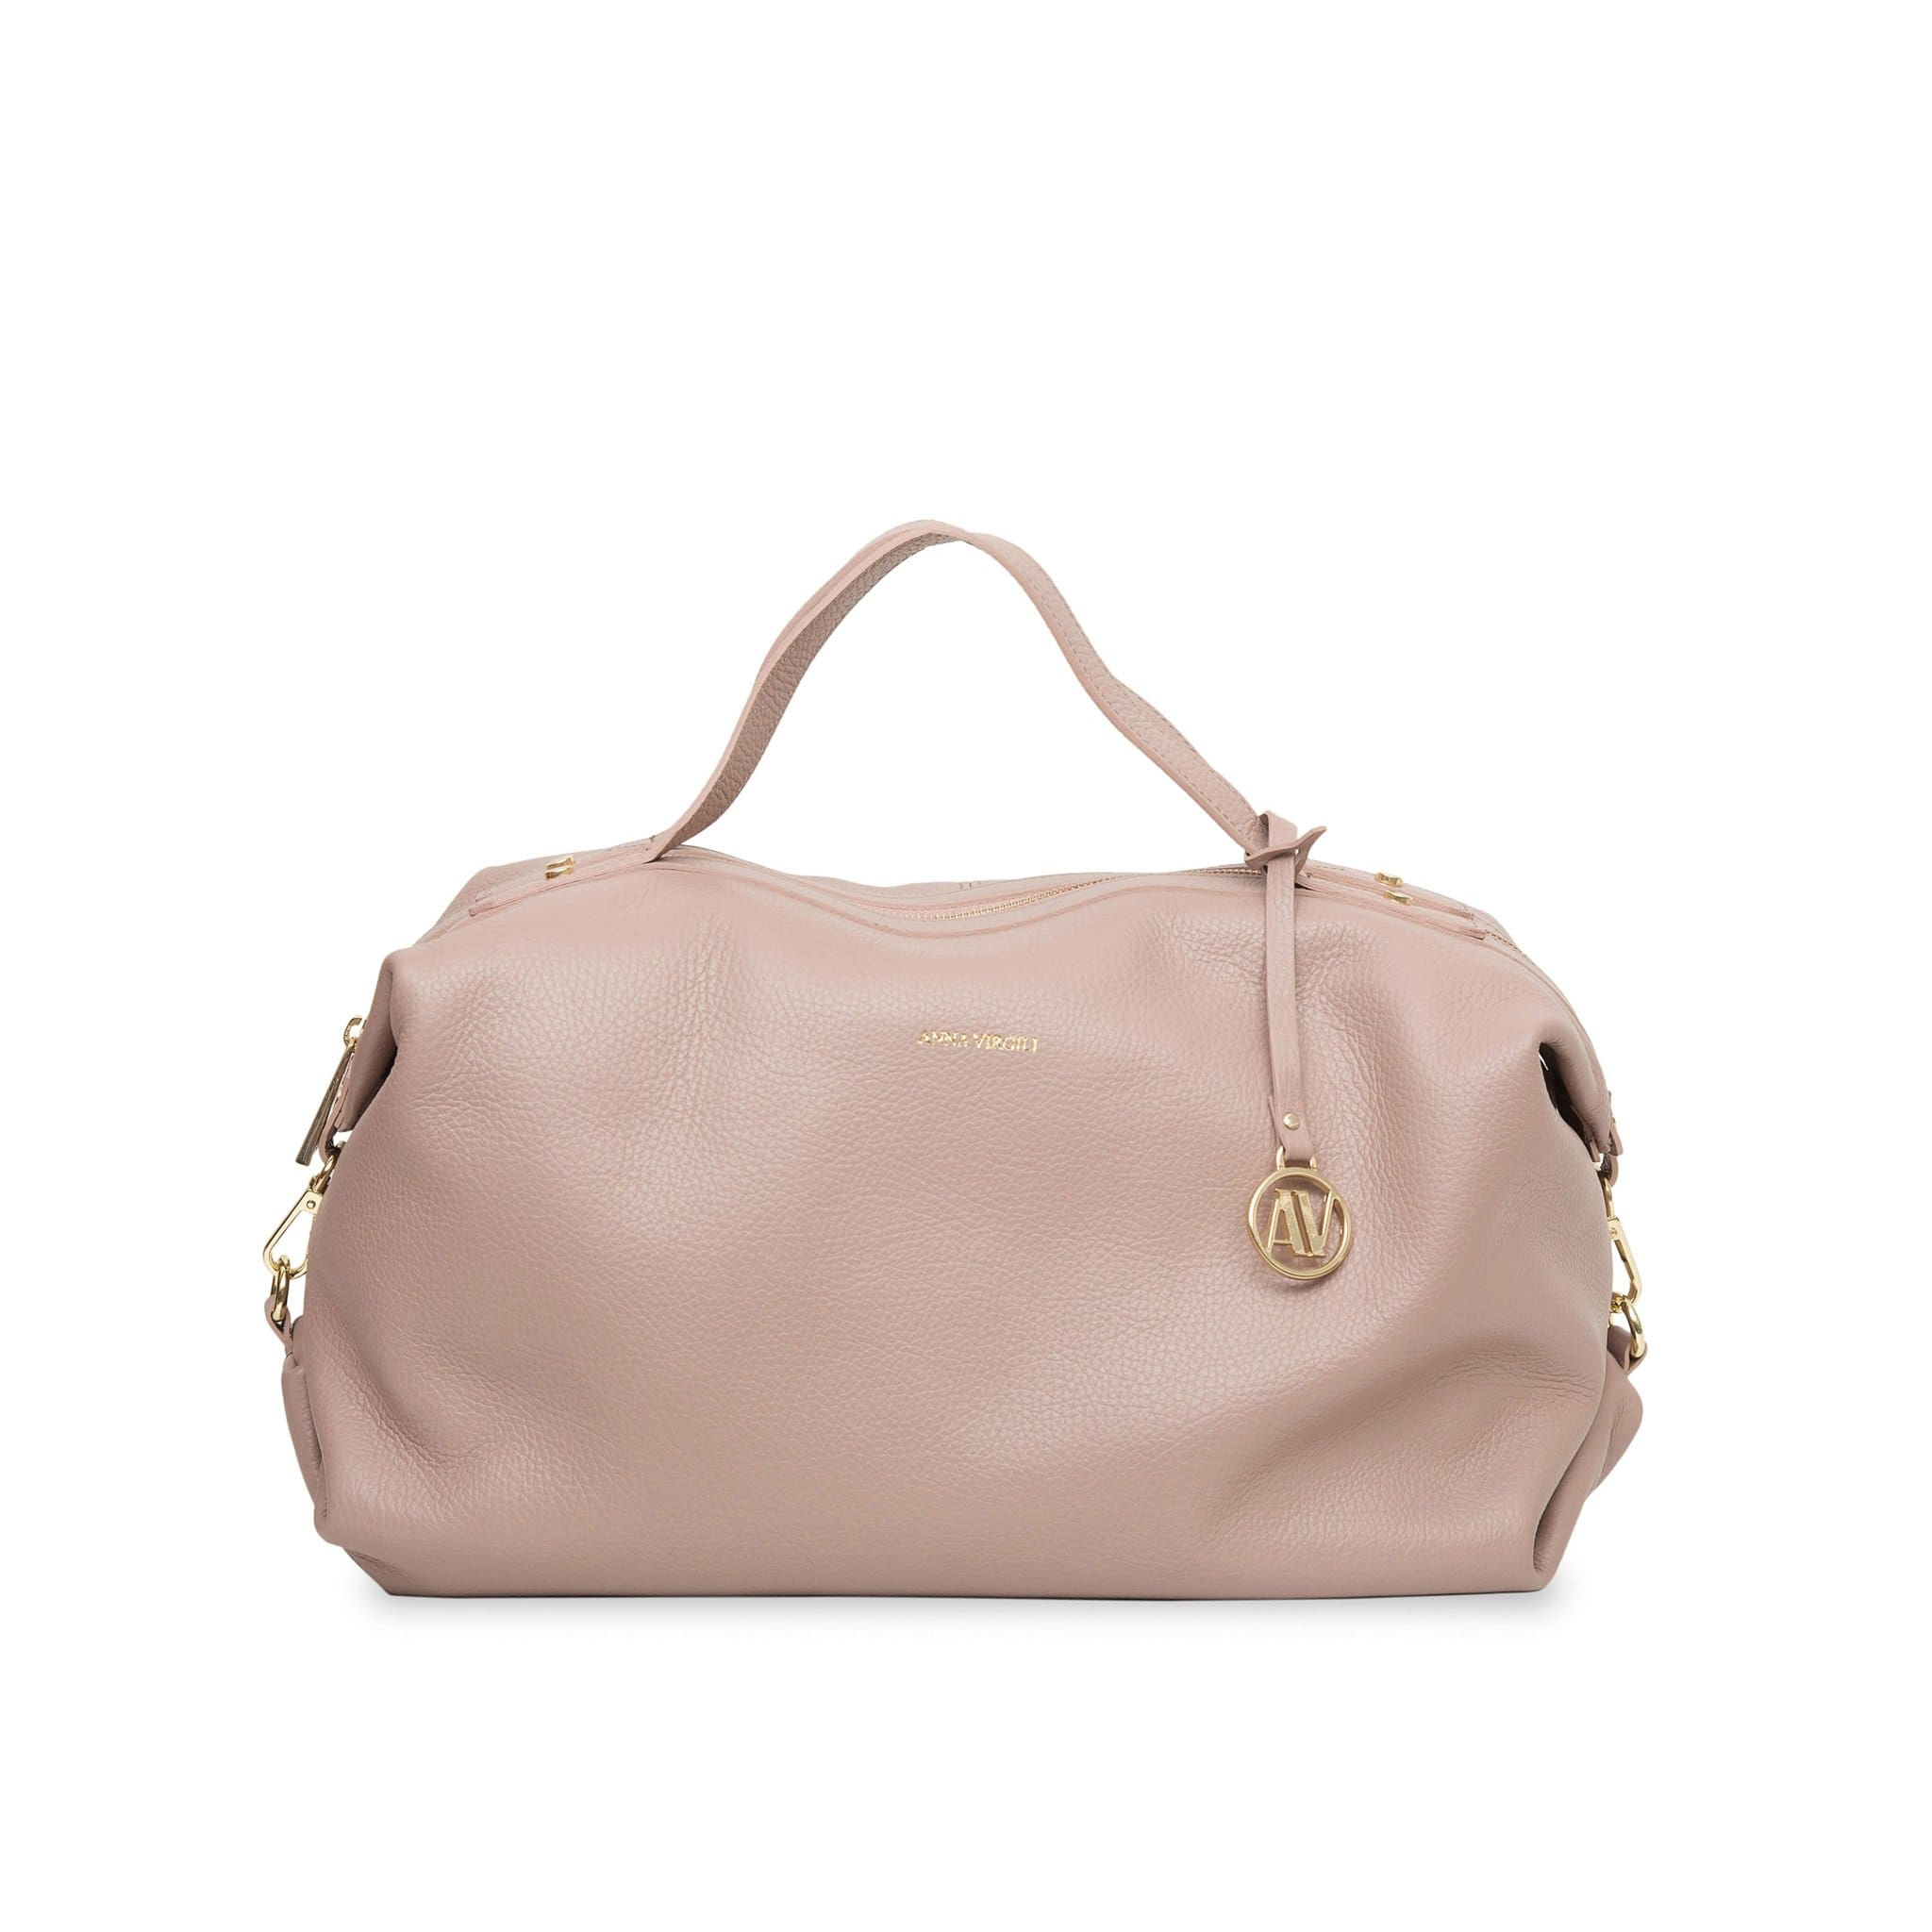 Giada Rimini Leather Handbag - Nude